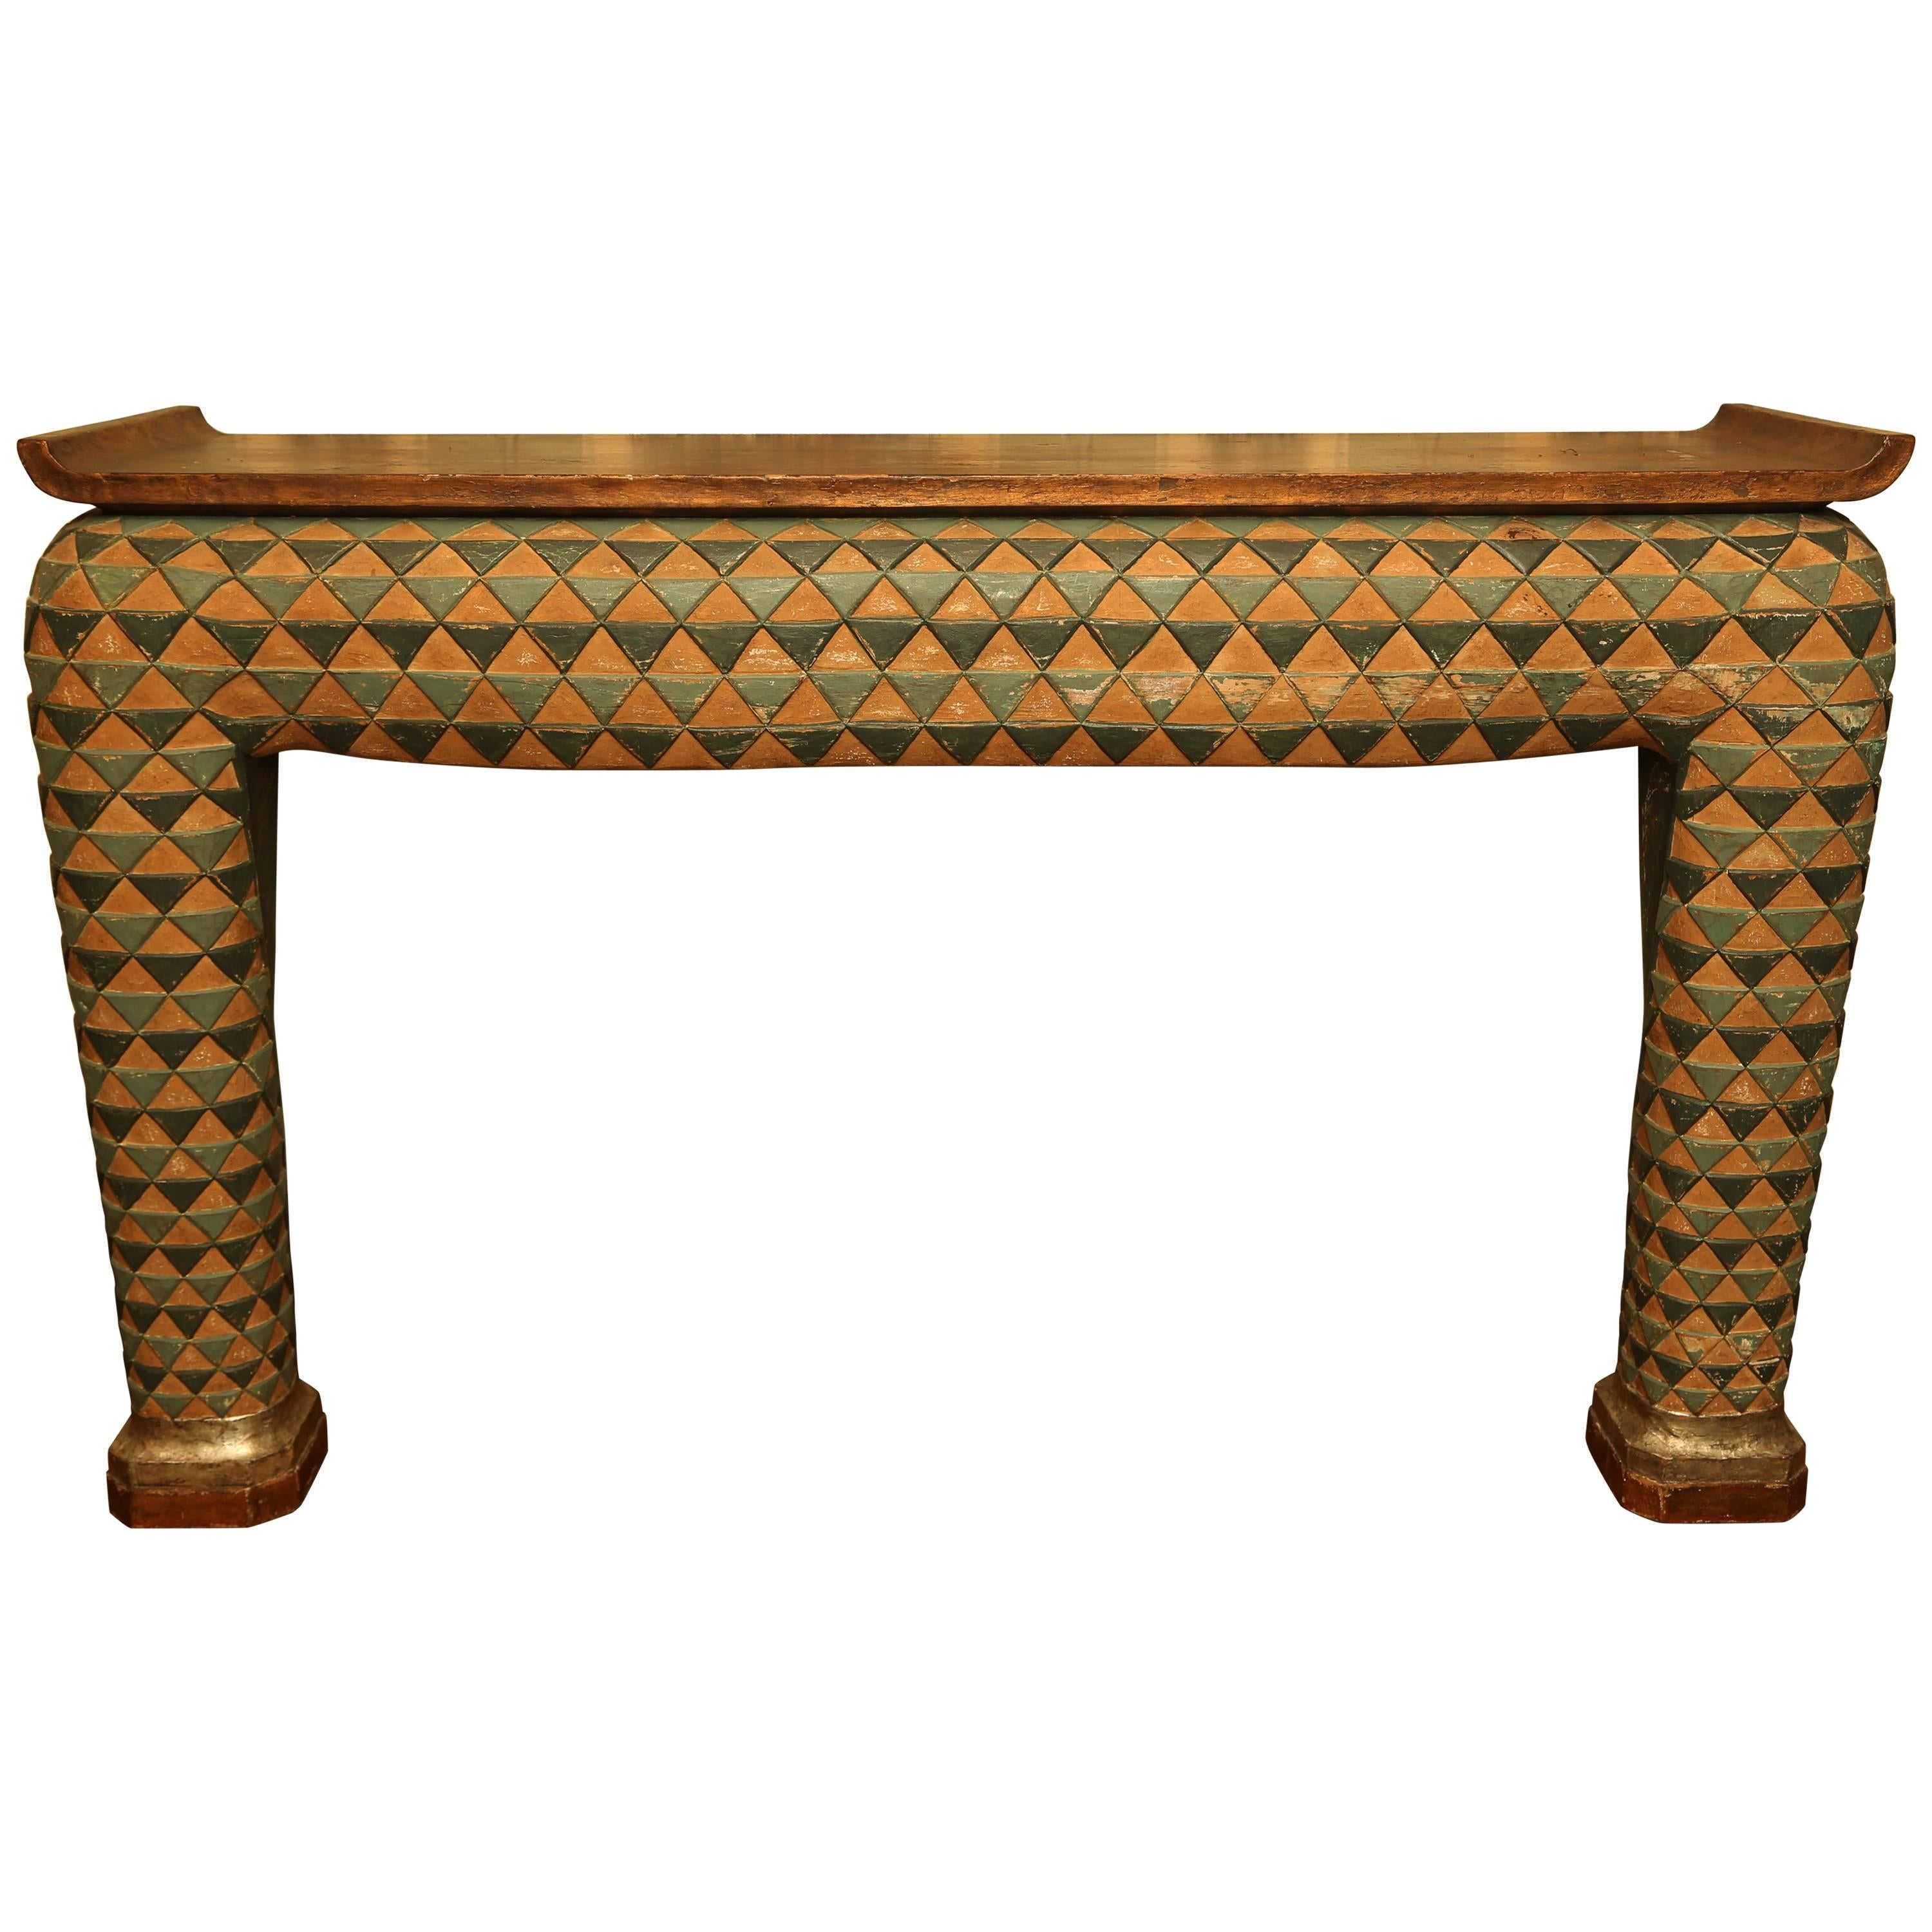 Unusual Asian Style Polychrome Plaster Console Table For Sale at 1stdibs